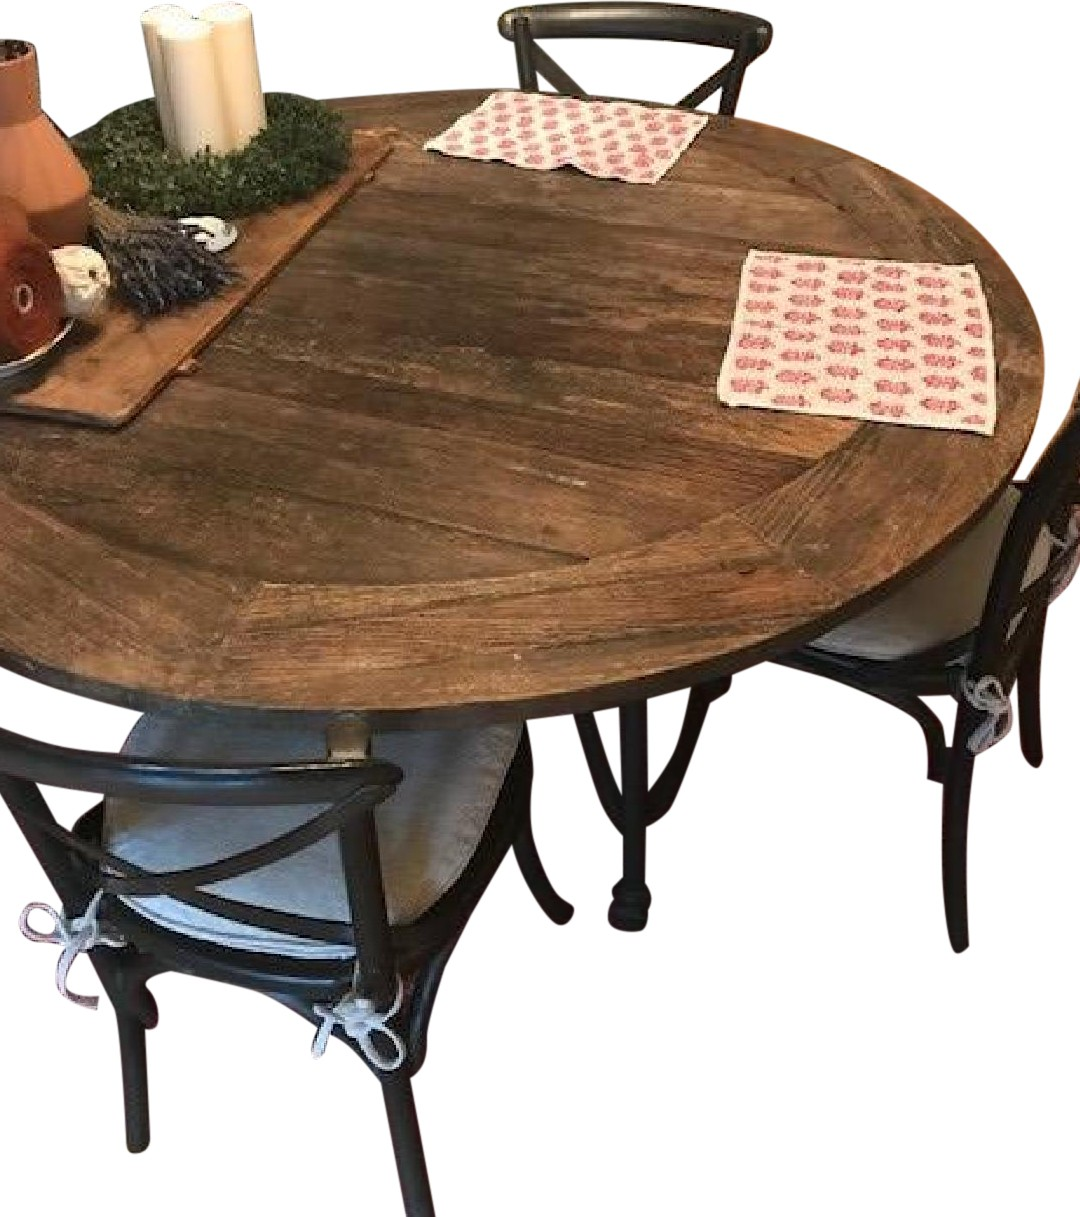 Restoration Hardware Flatiron Dining Table w/ 6 Chairs